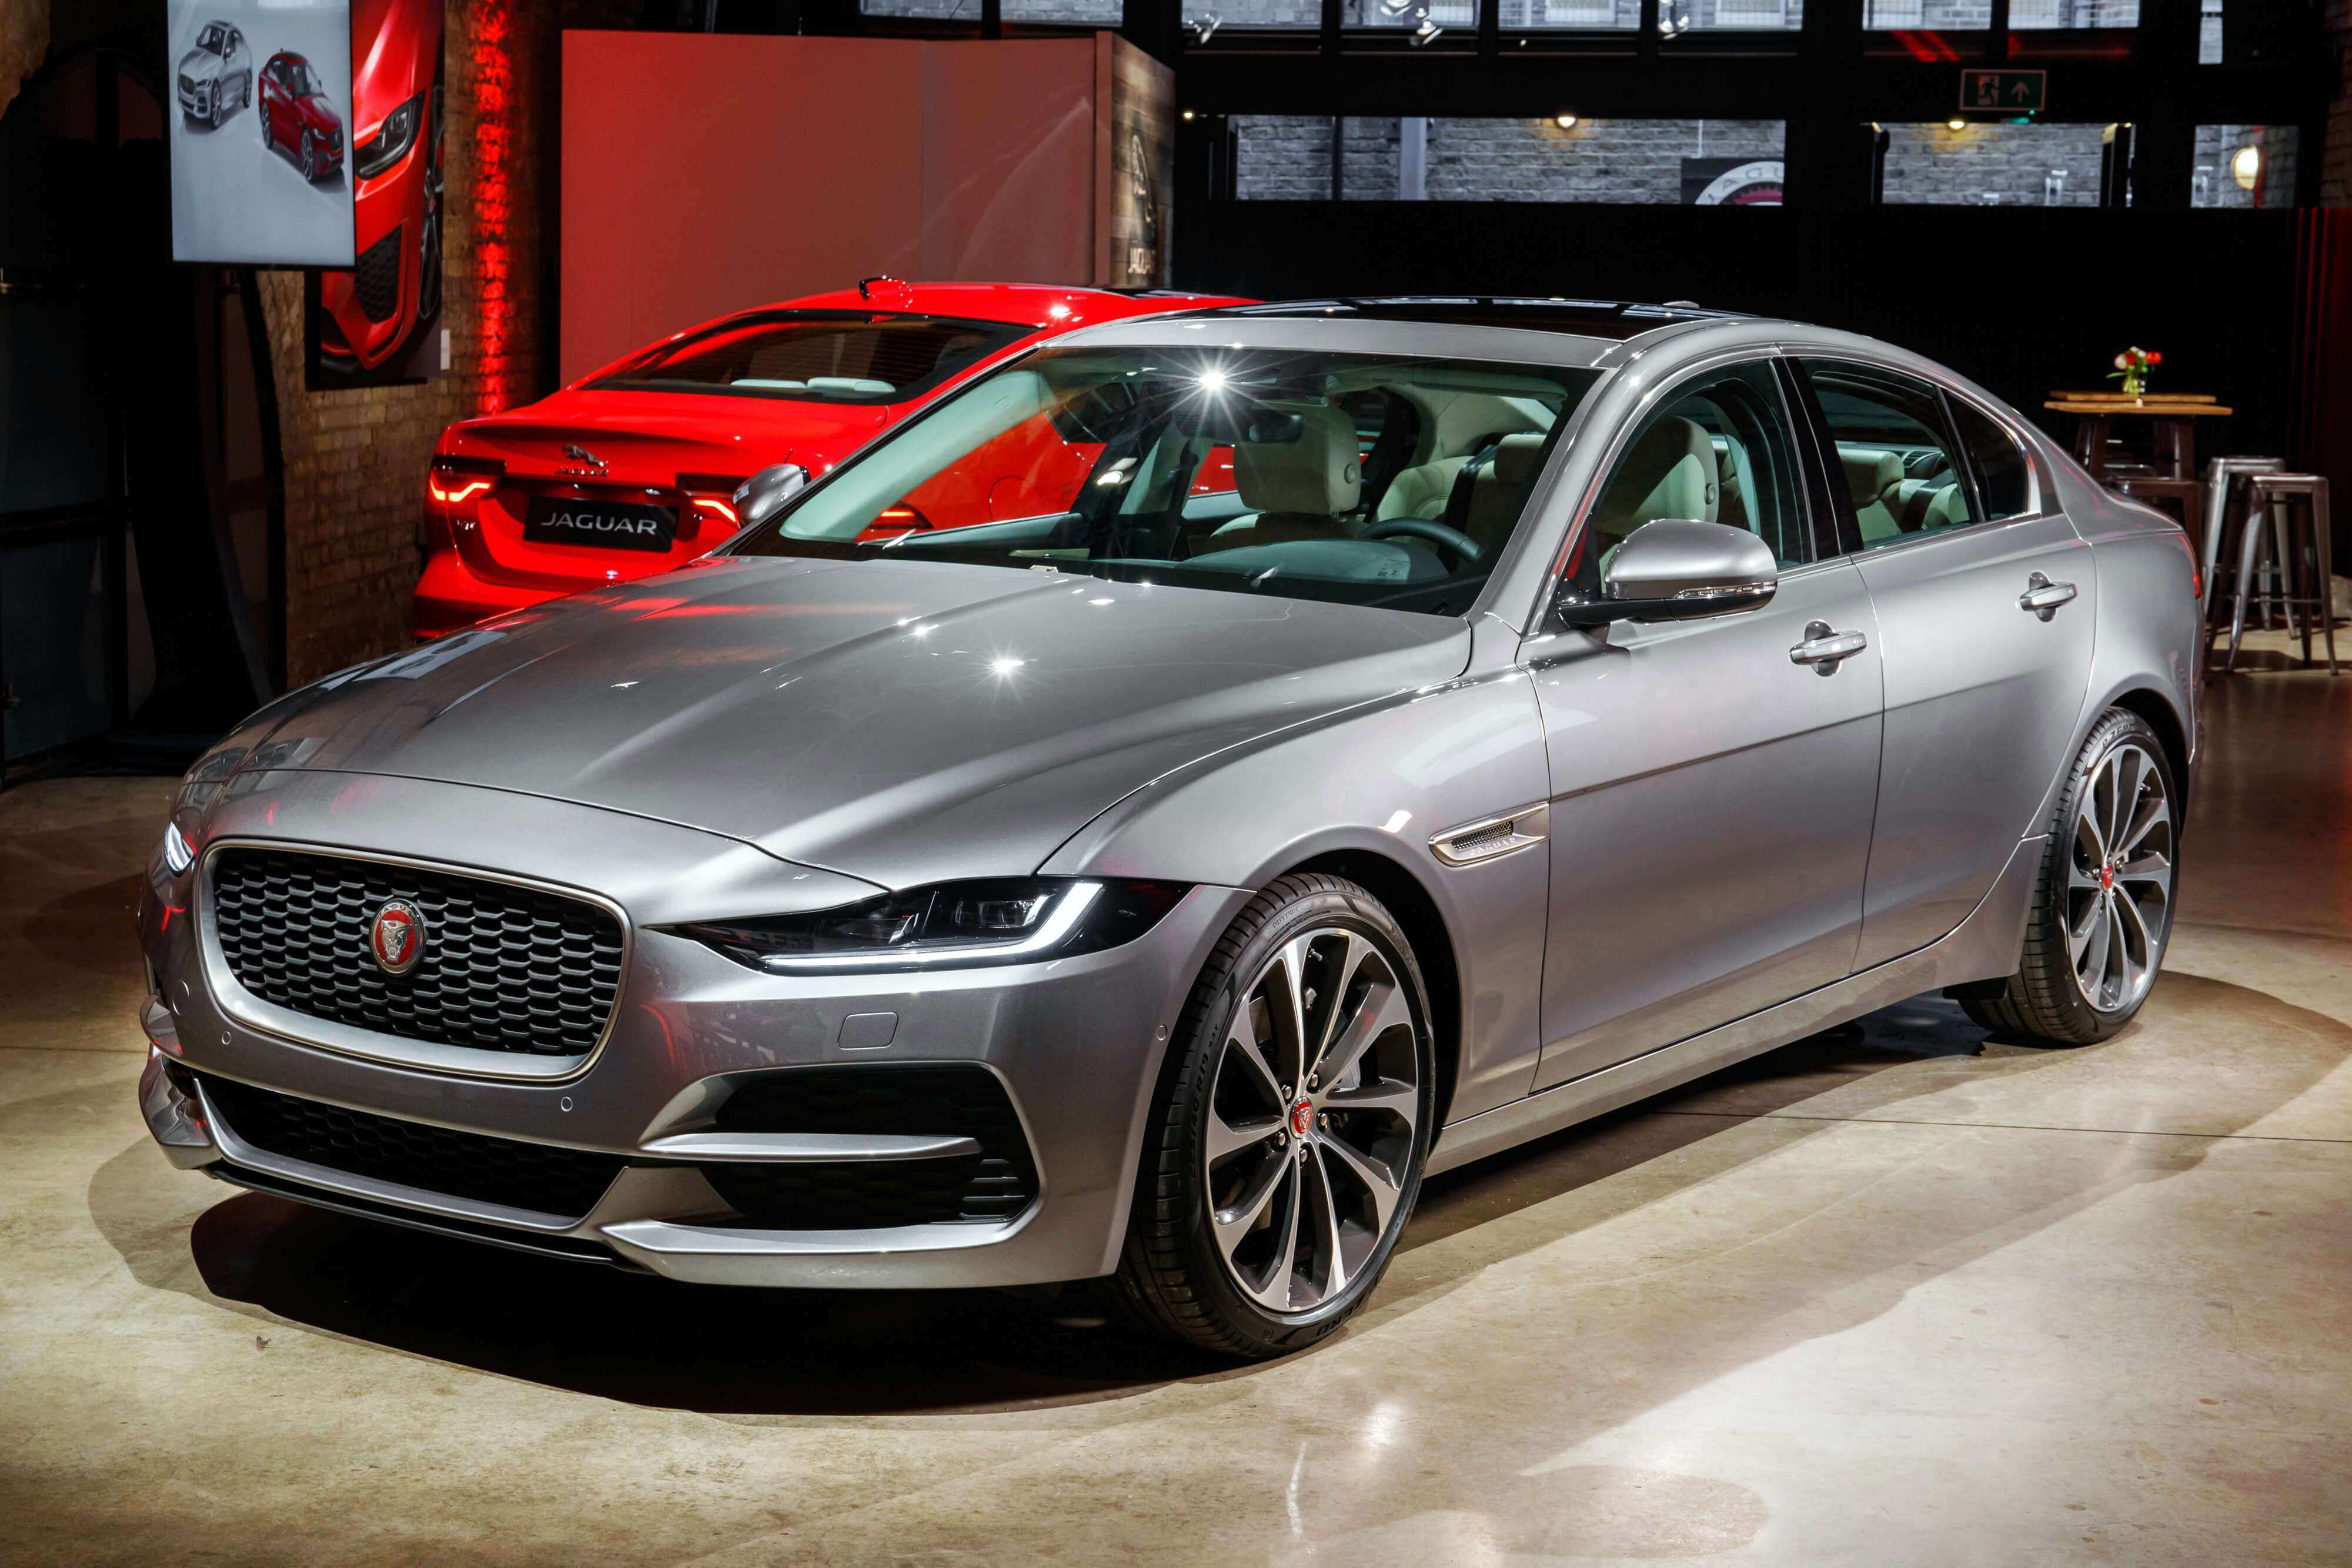 76 All New 2020 Jaguar XF Redesign And Concept